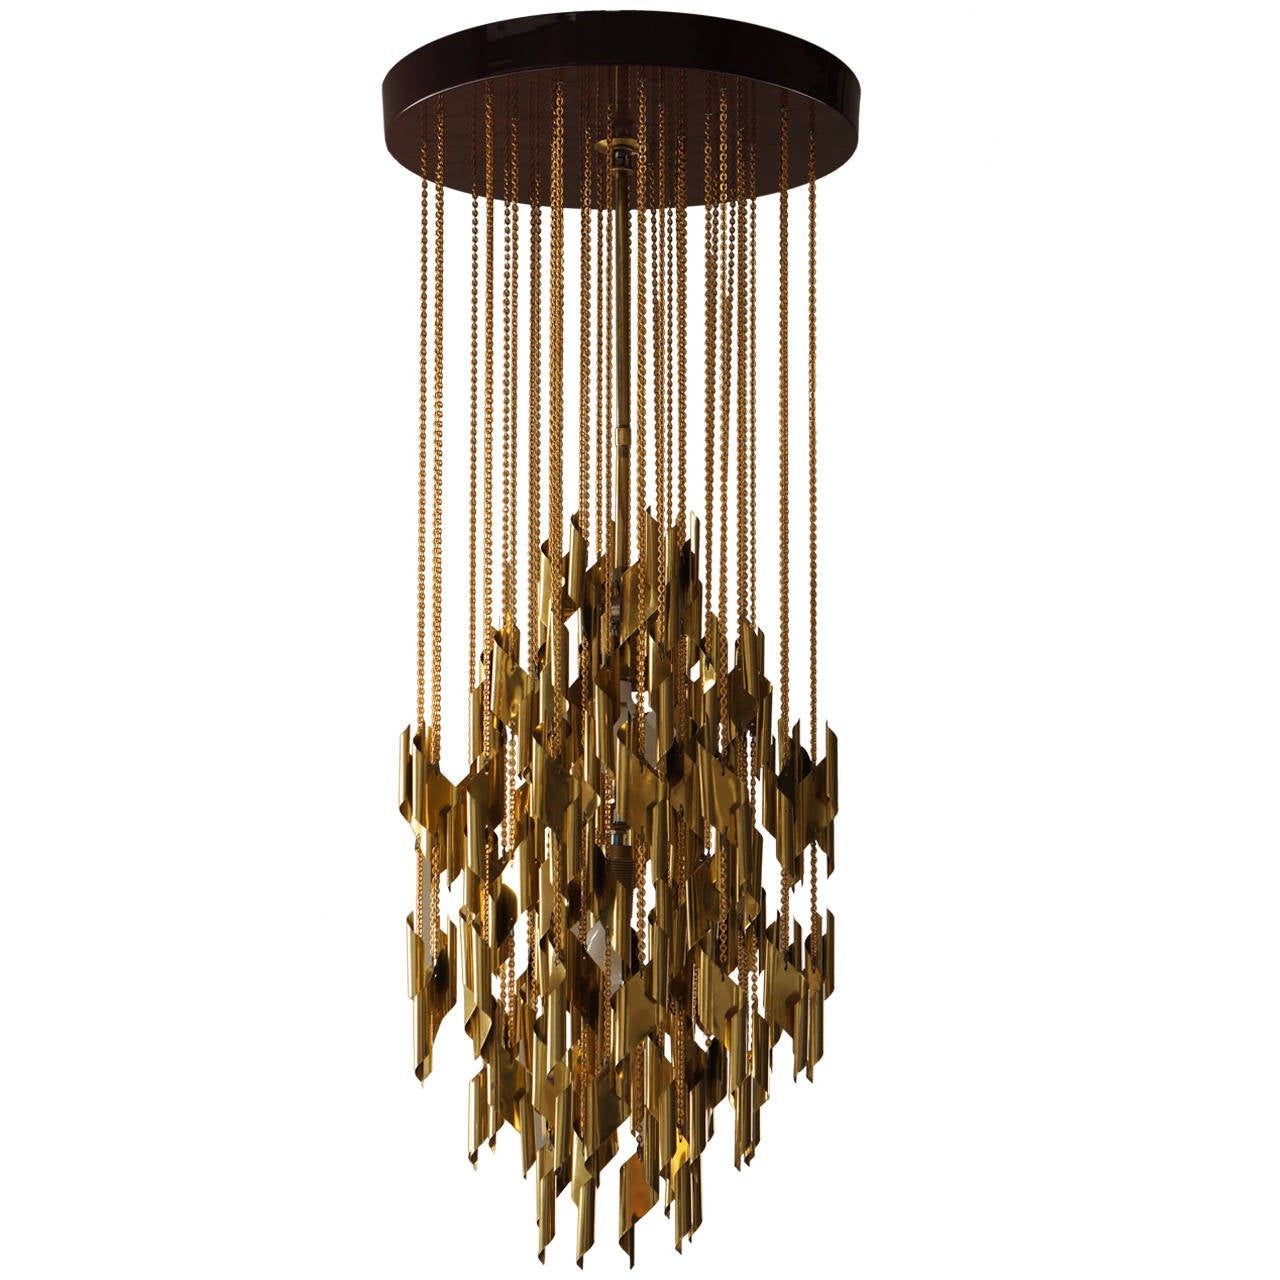 Impressive and Beautiful Chandelier For Sale at 1stdibs